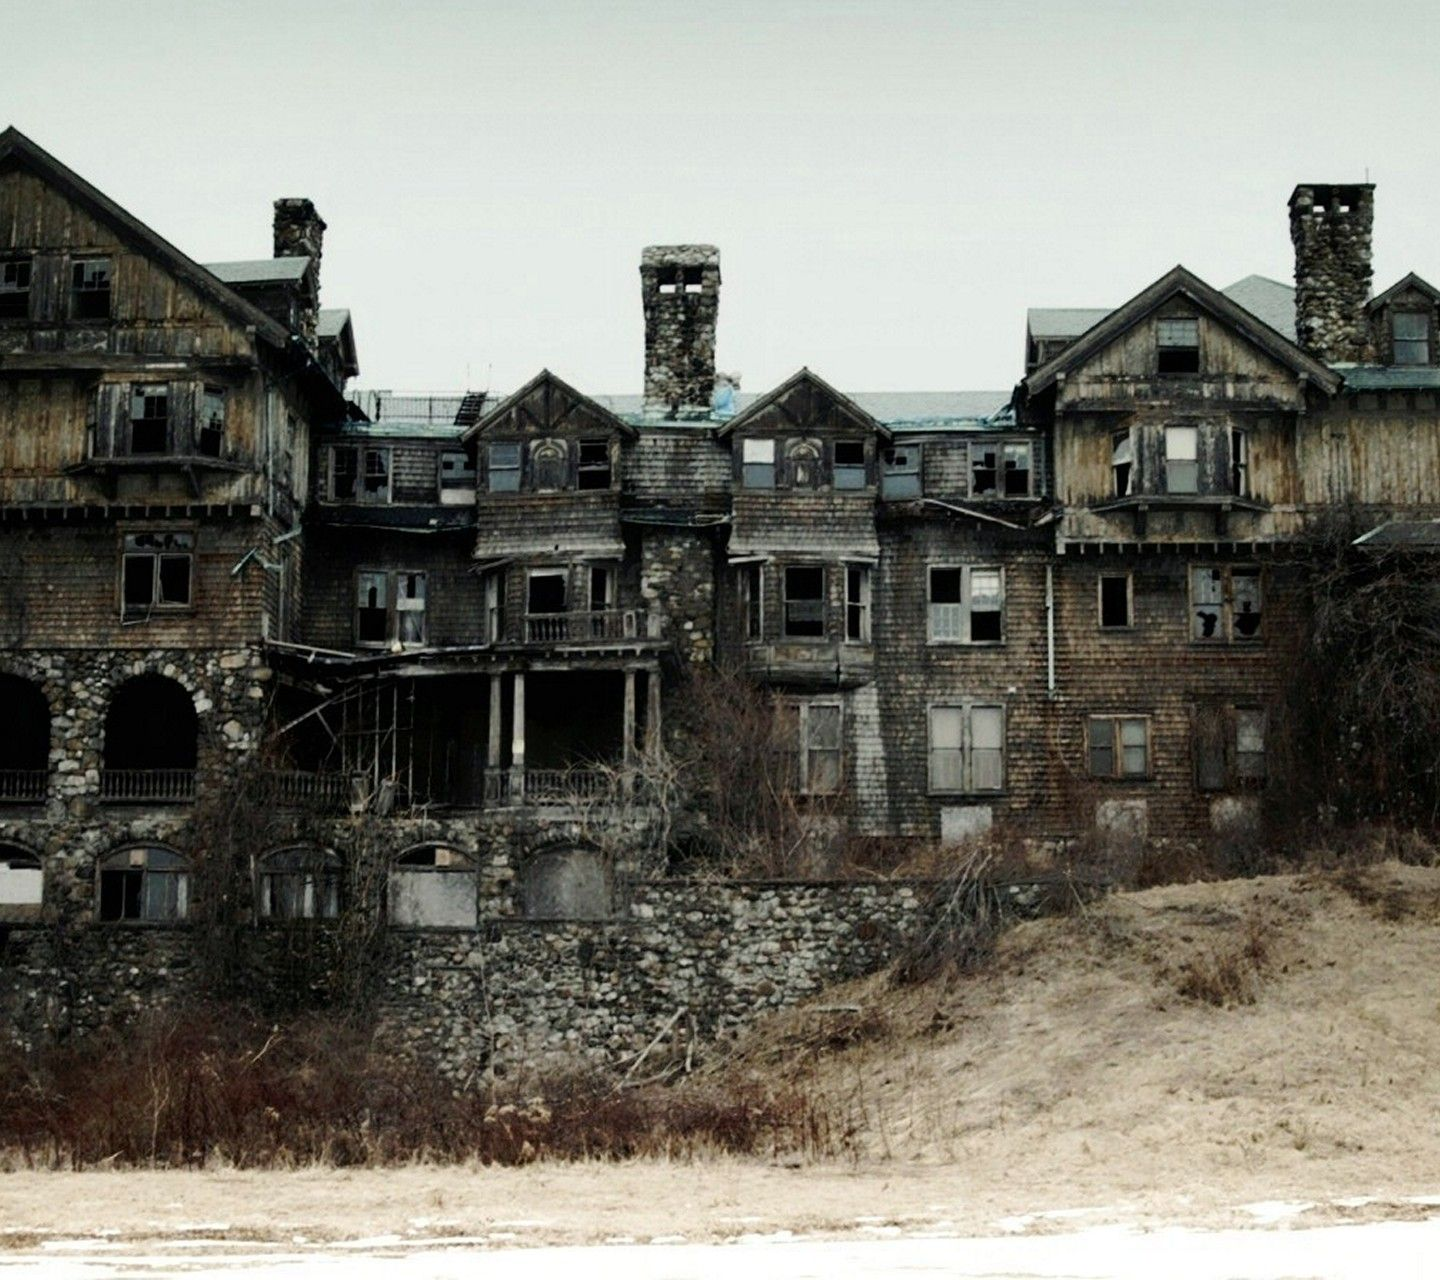 Haunted House York University: Quotes About Abandoned Old Homes